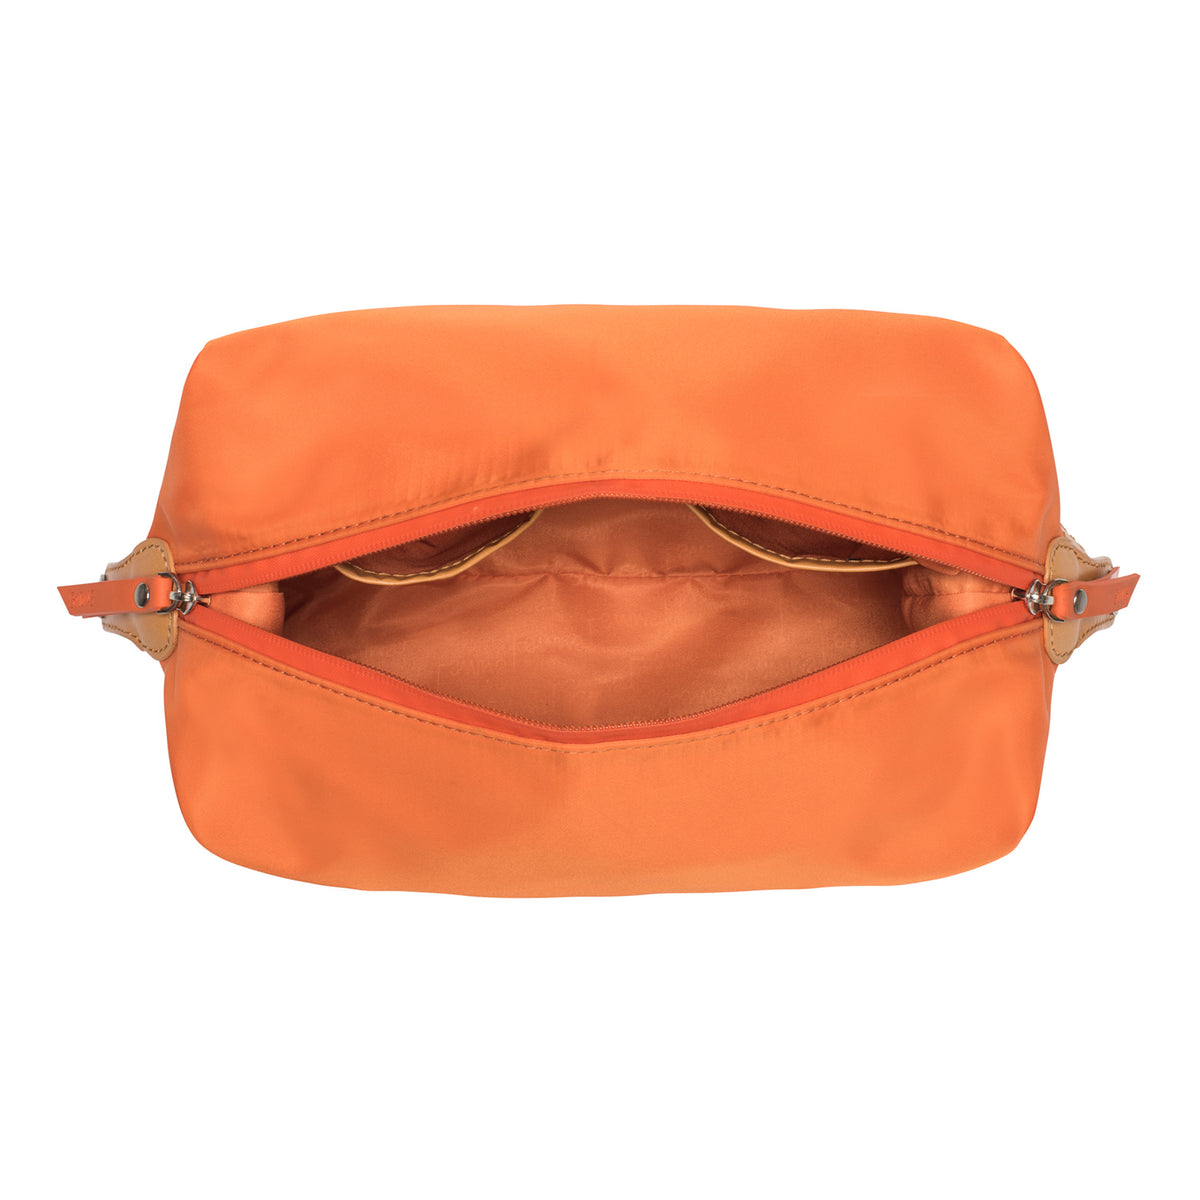 Necessaire - background::white,variant::Swims Orange